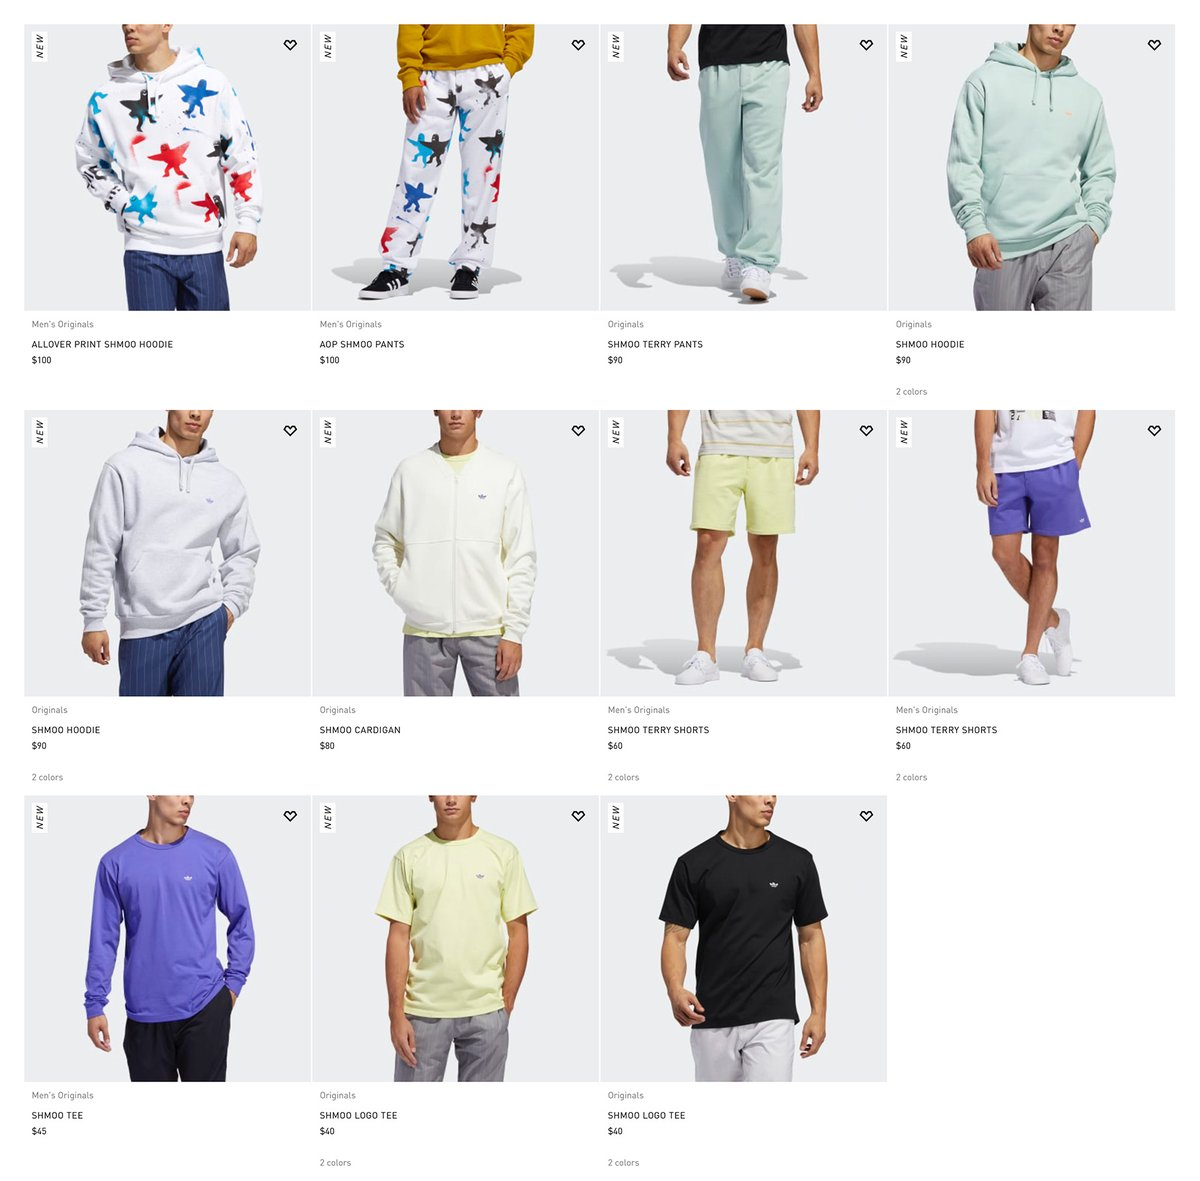 Adidas Alerts On Twitter Now Available On Adidas Us Gonz X Adidas Shmoo Apparel Https T Co Rir2gogzgw Ad